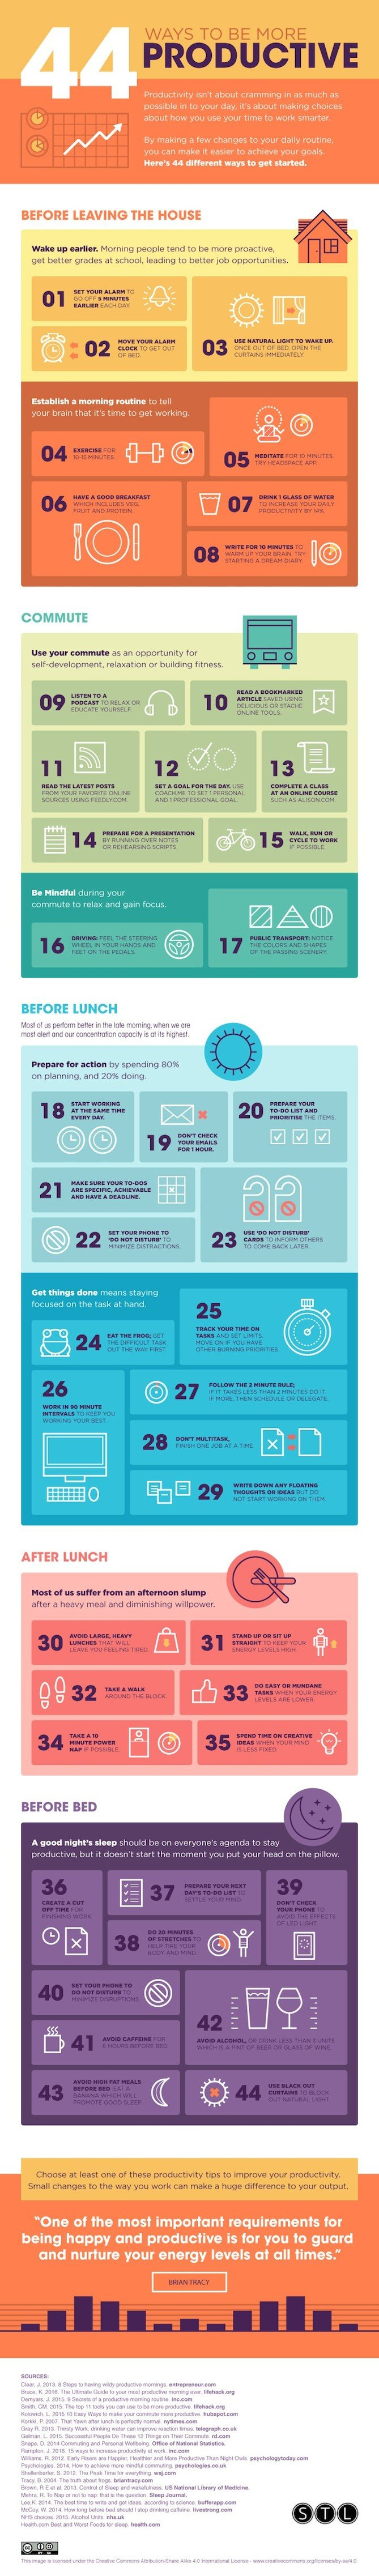 44-ways-to-be-more-productive-1.jpg